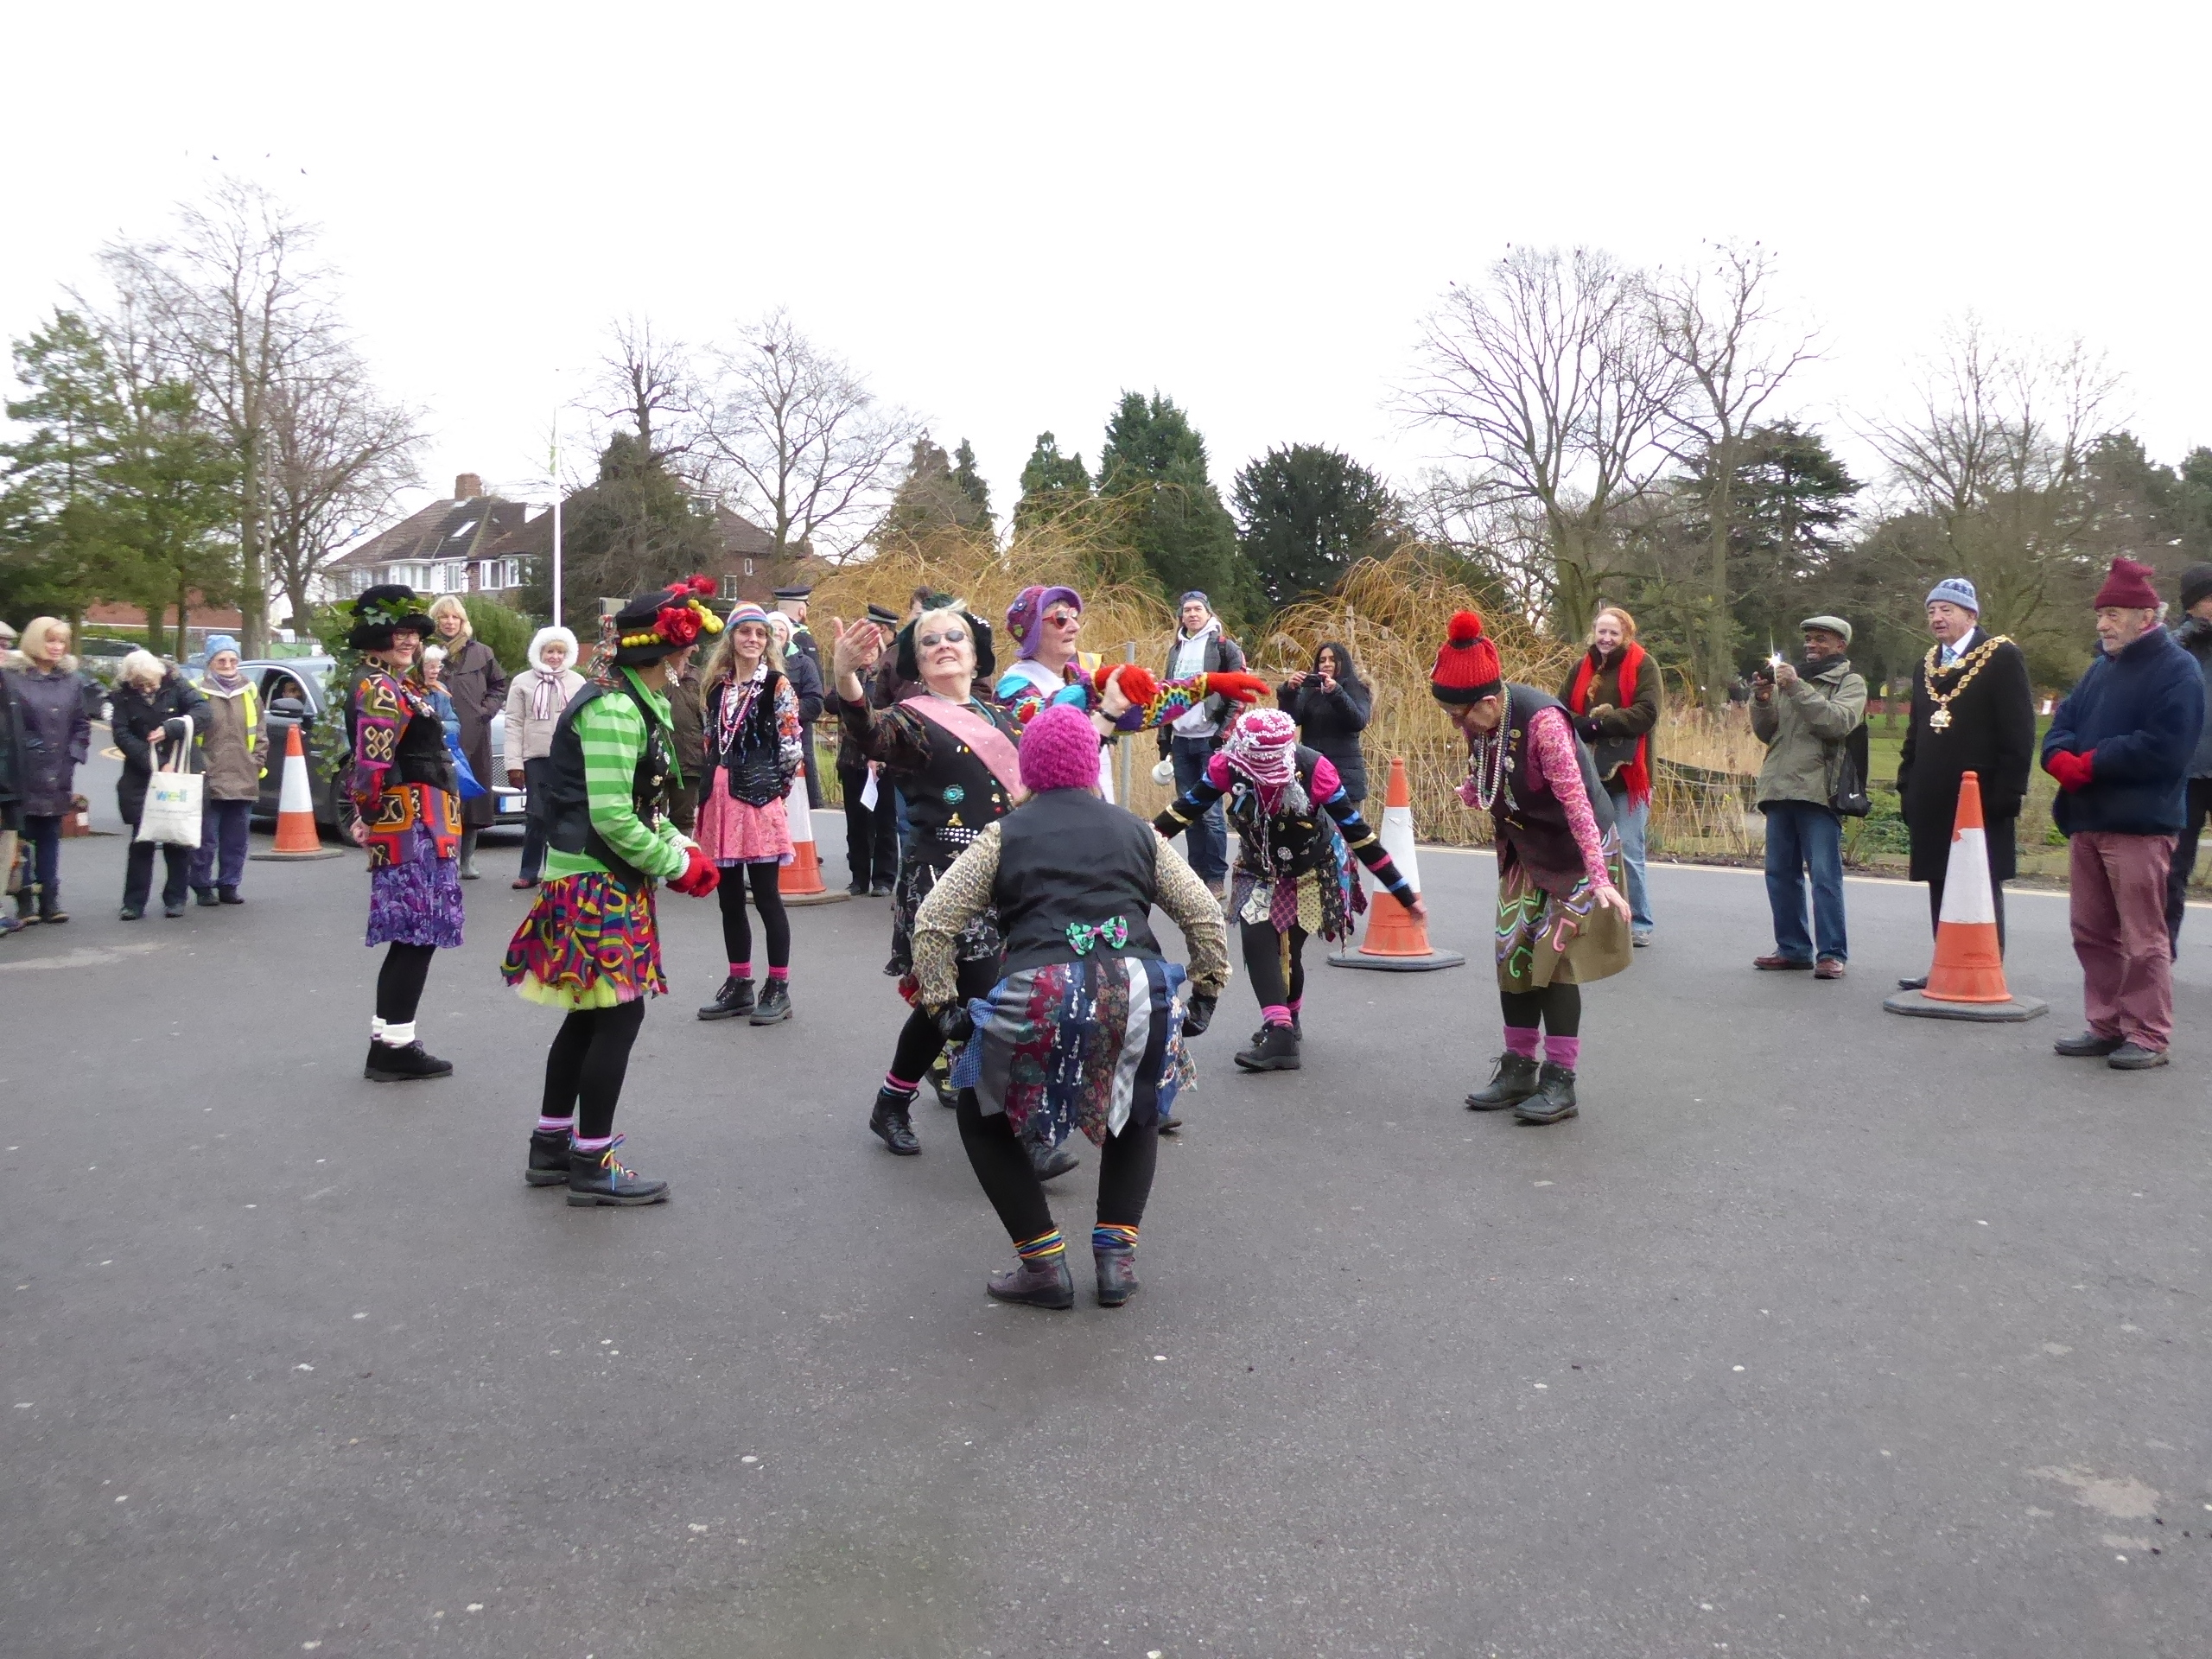 Roller skating hazel grove - The Lord Mayor With Some Of The Friends